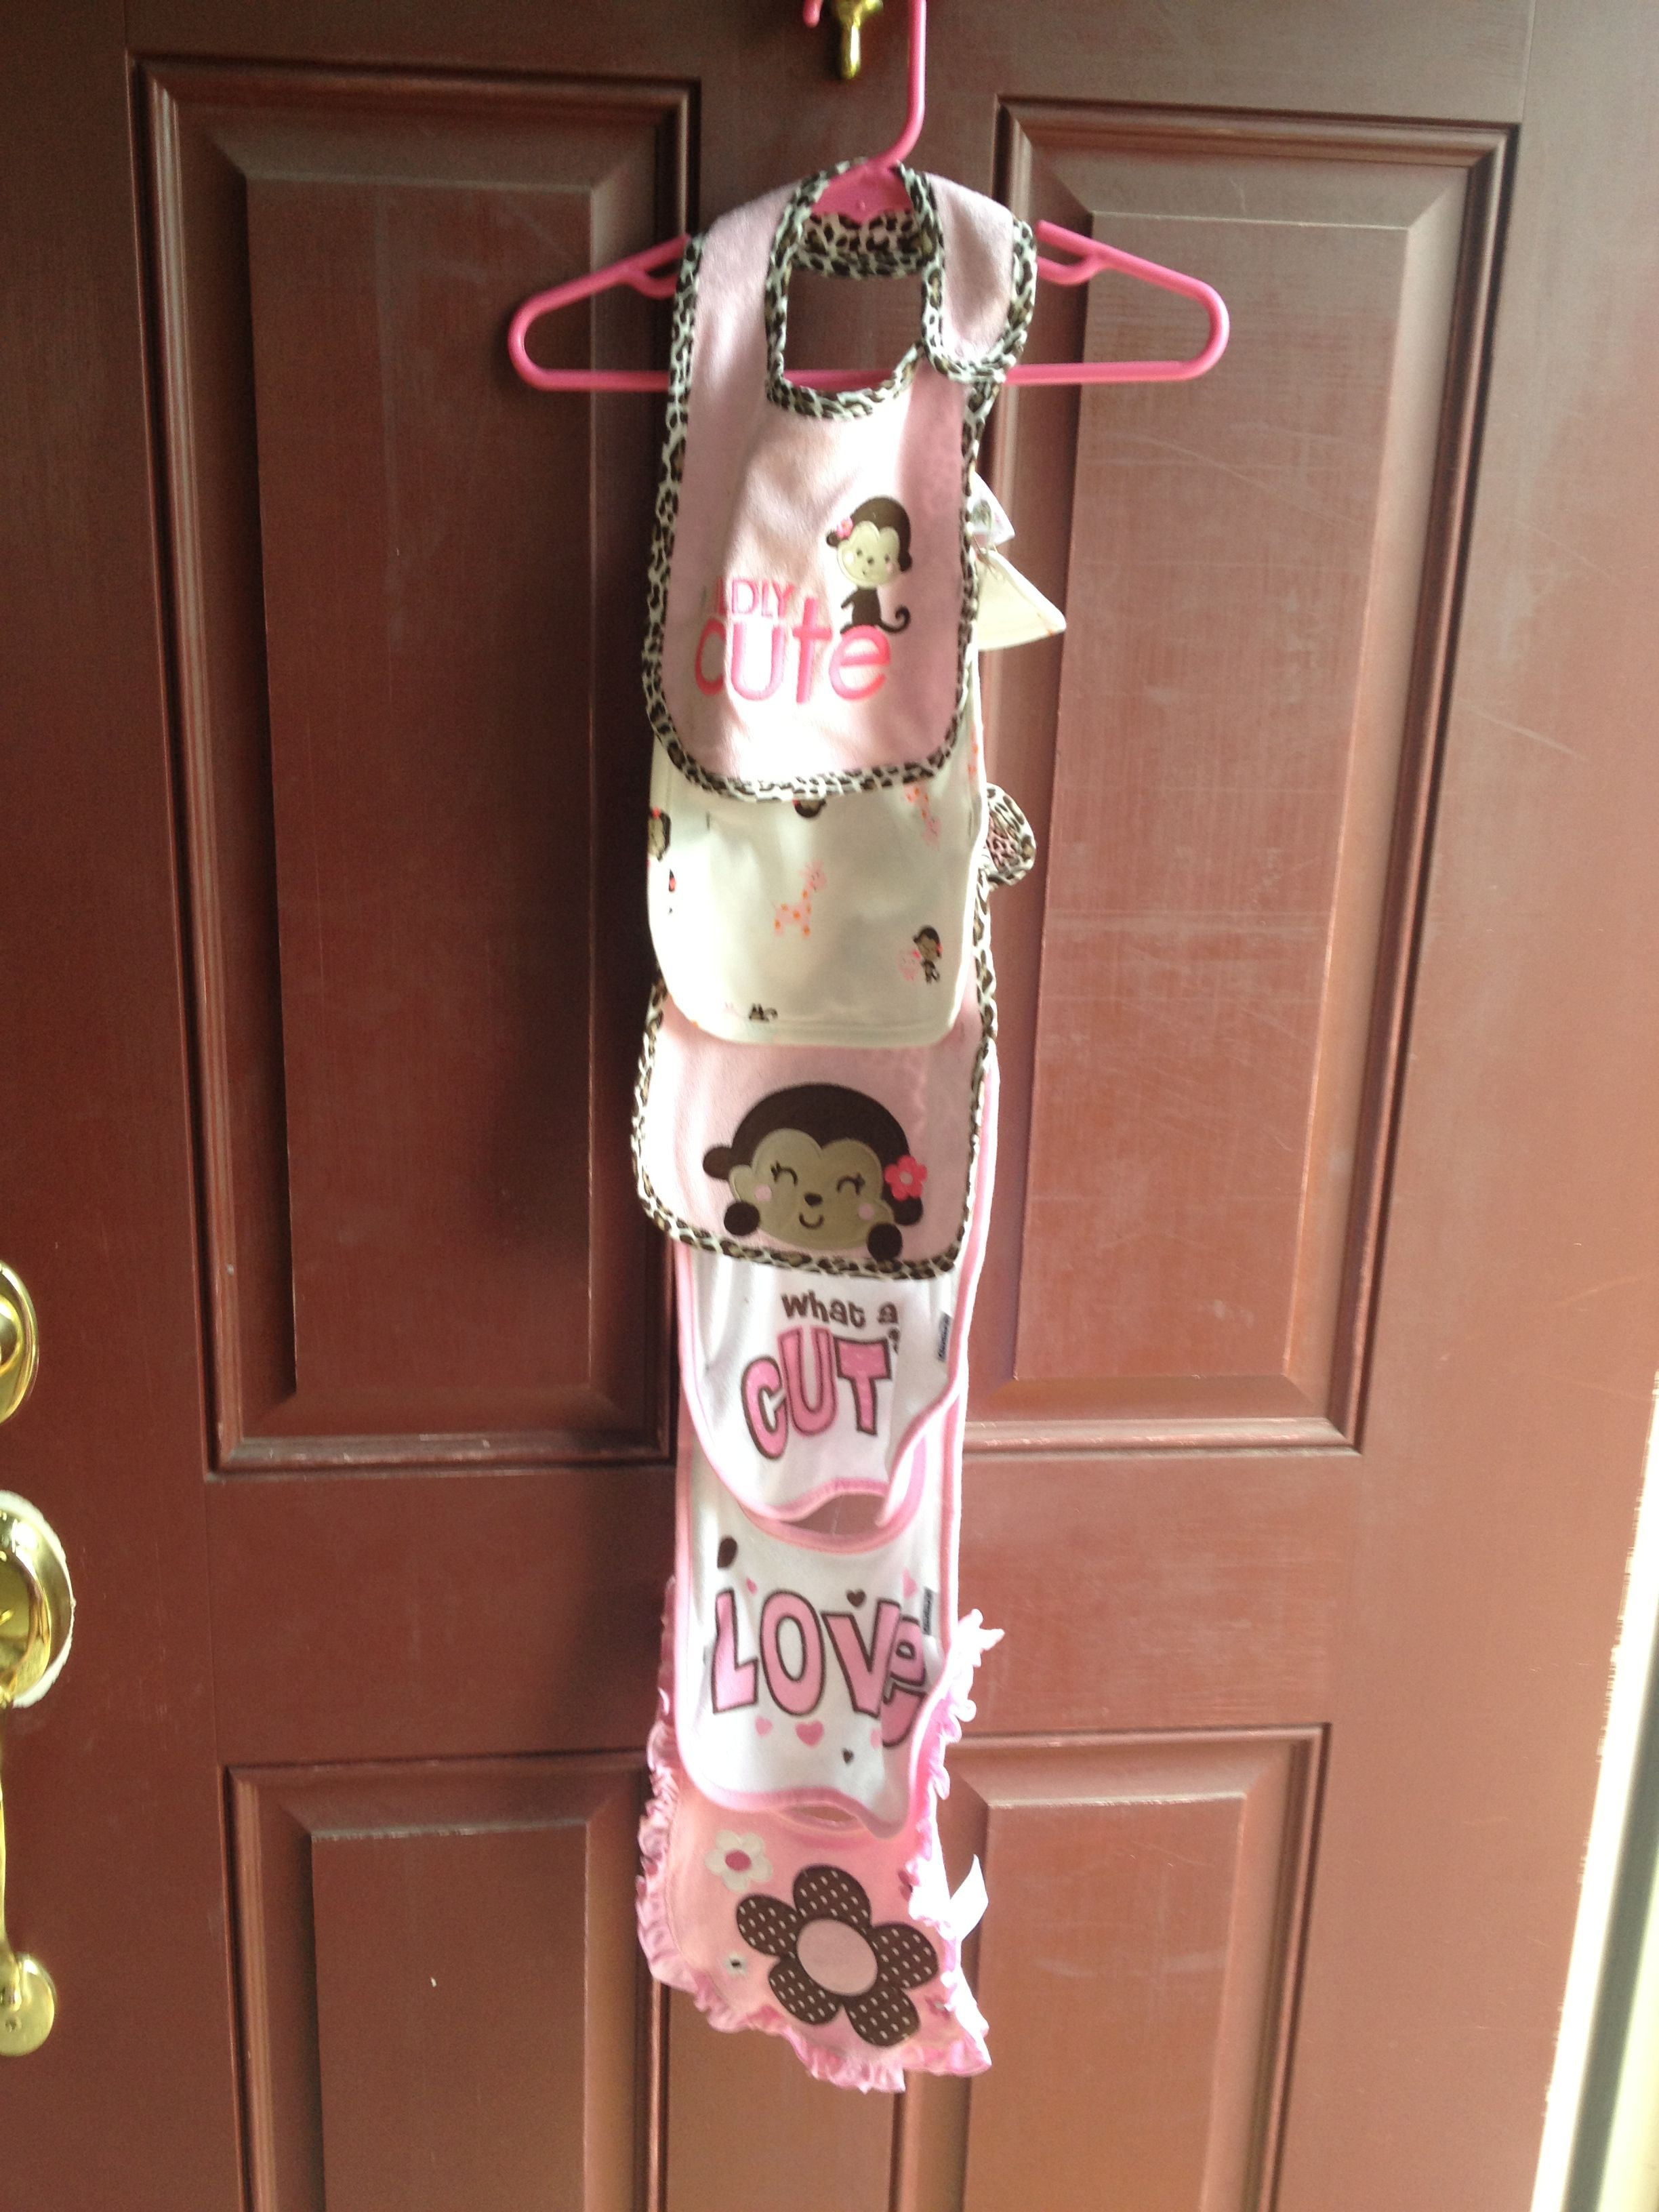 #baby #shower #bib #door hanger